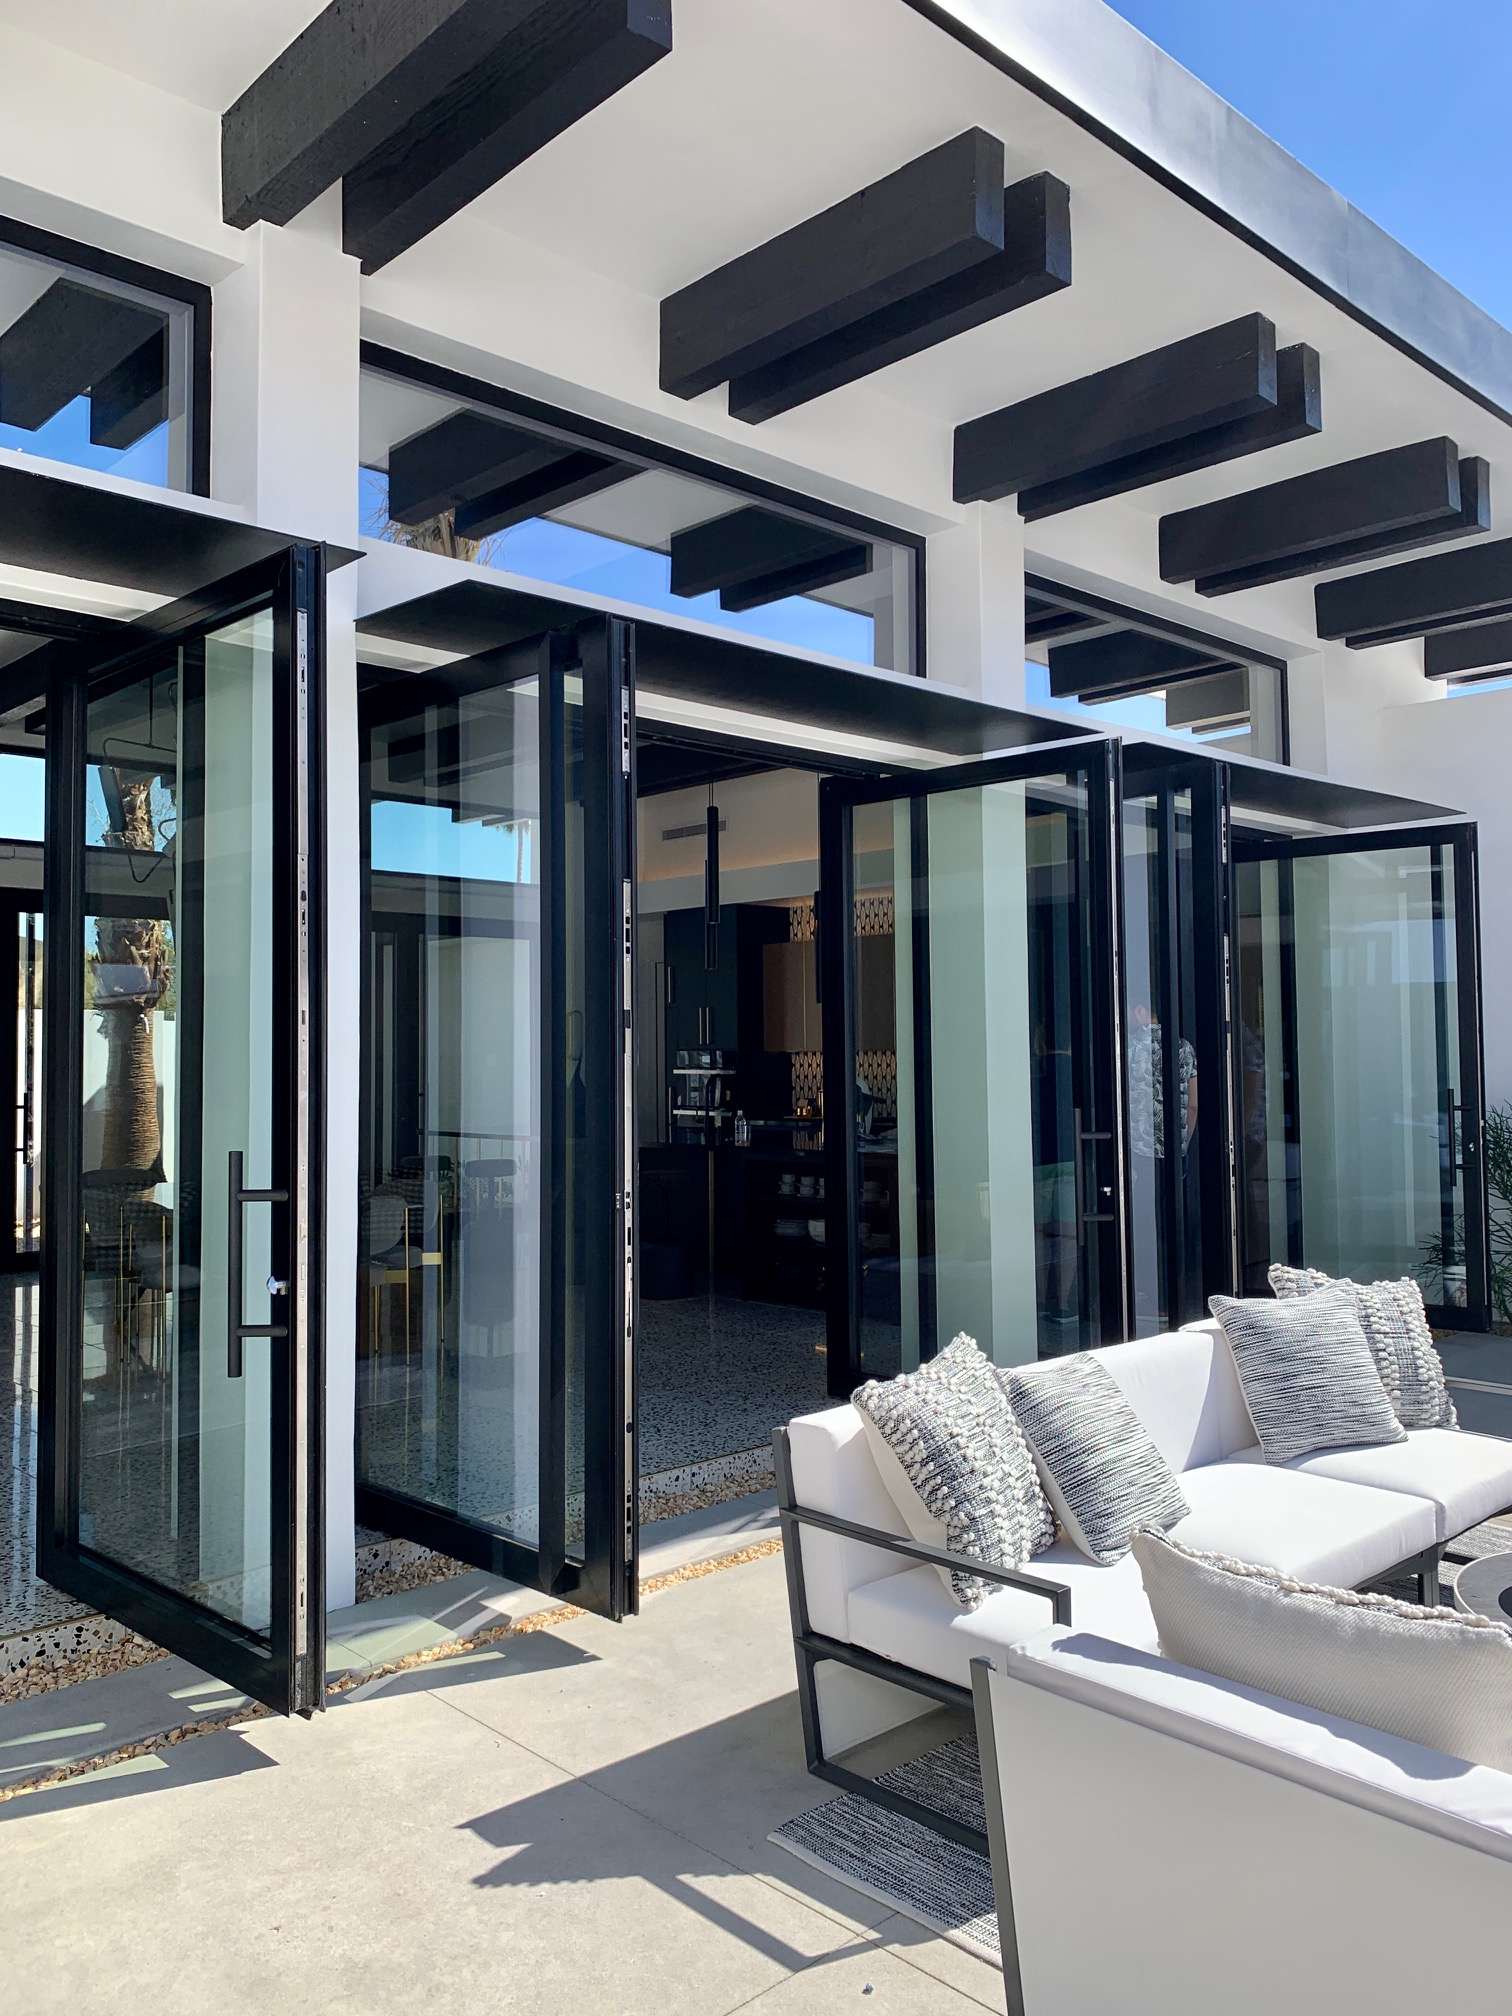 Elegant matte black double-leaf aluminum pivot doors by SPI Finestra open up to the patio in this Palm Springs Villa